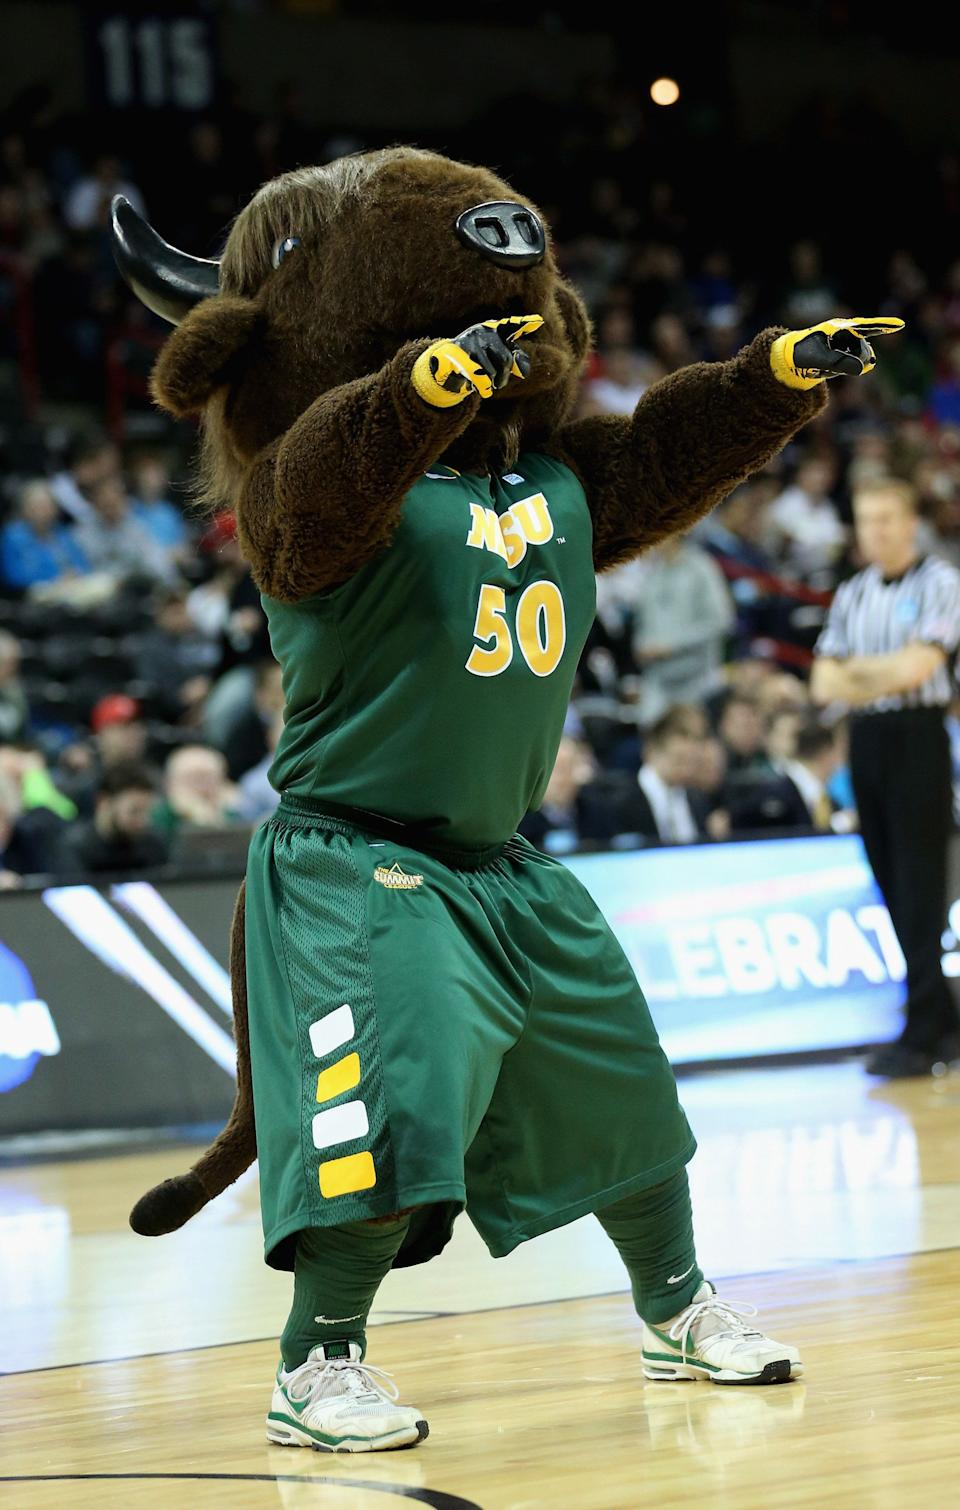 SPOKANE, WA - MARCH 20:  The North Dakota State Bison mascot, Thundar performs during haltime in the second round of the 2014 NCAA Men's Basketball Tournament game against the Oklahoma Sooners at Spokane Veterans Memorial Arena on March 20, 2014 in Spokane, Washington.  (Photo by Stephen Dunn/Getty Images)